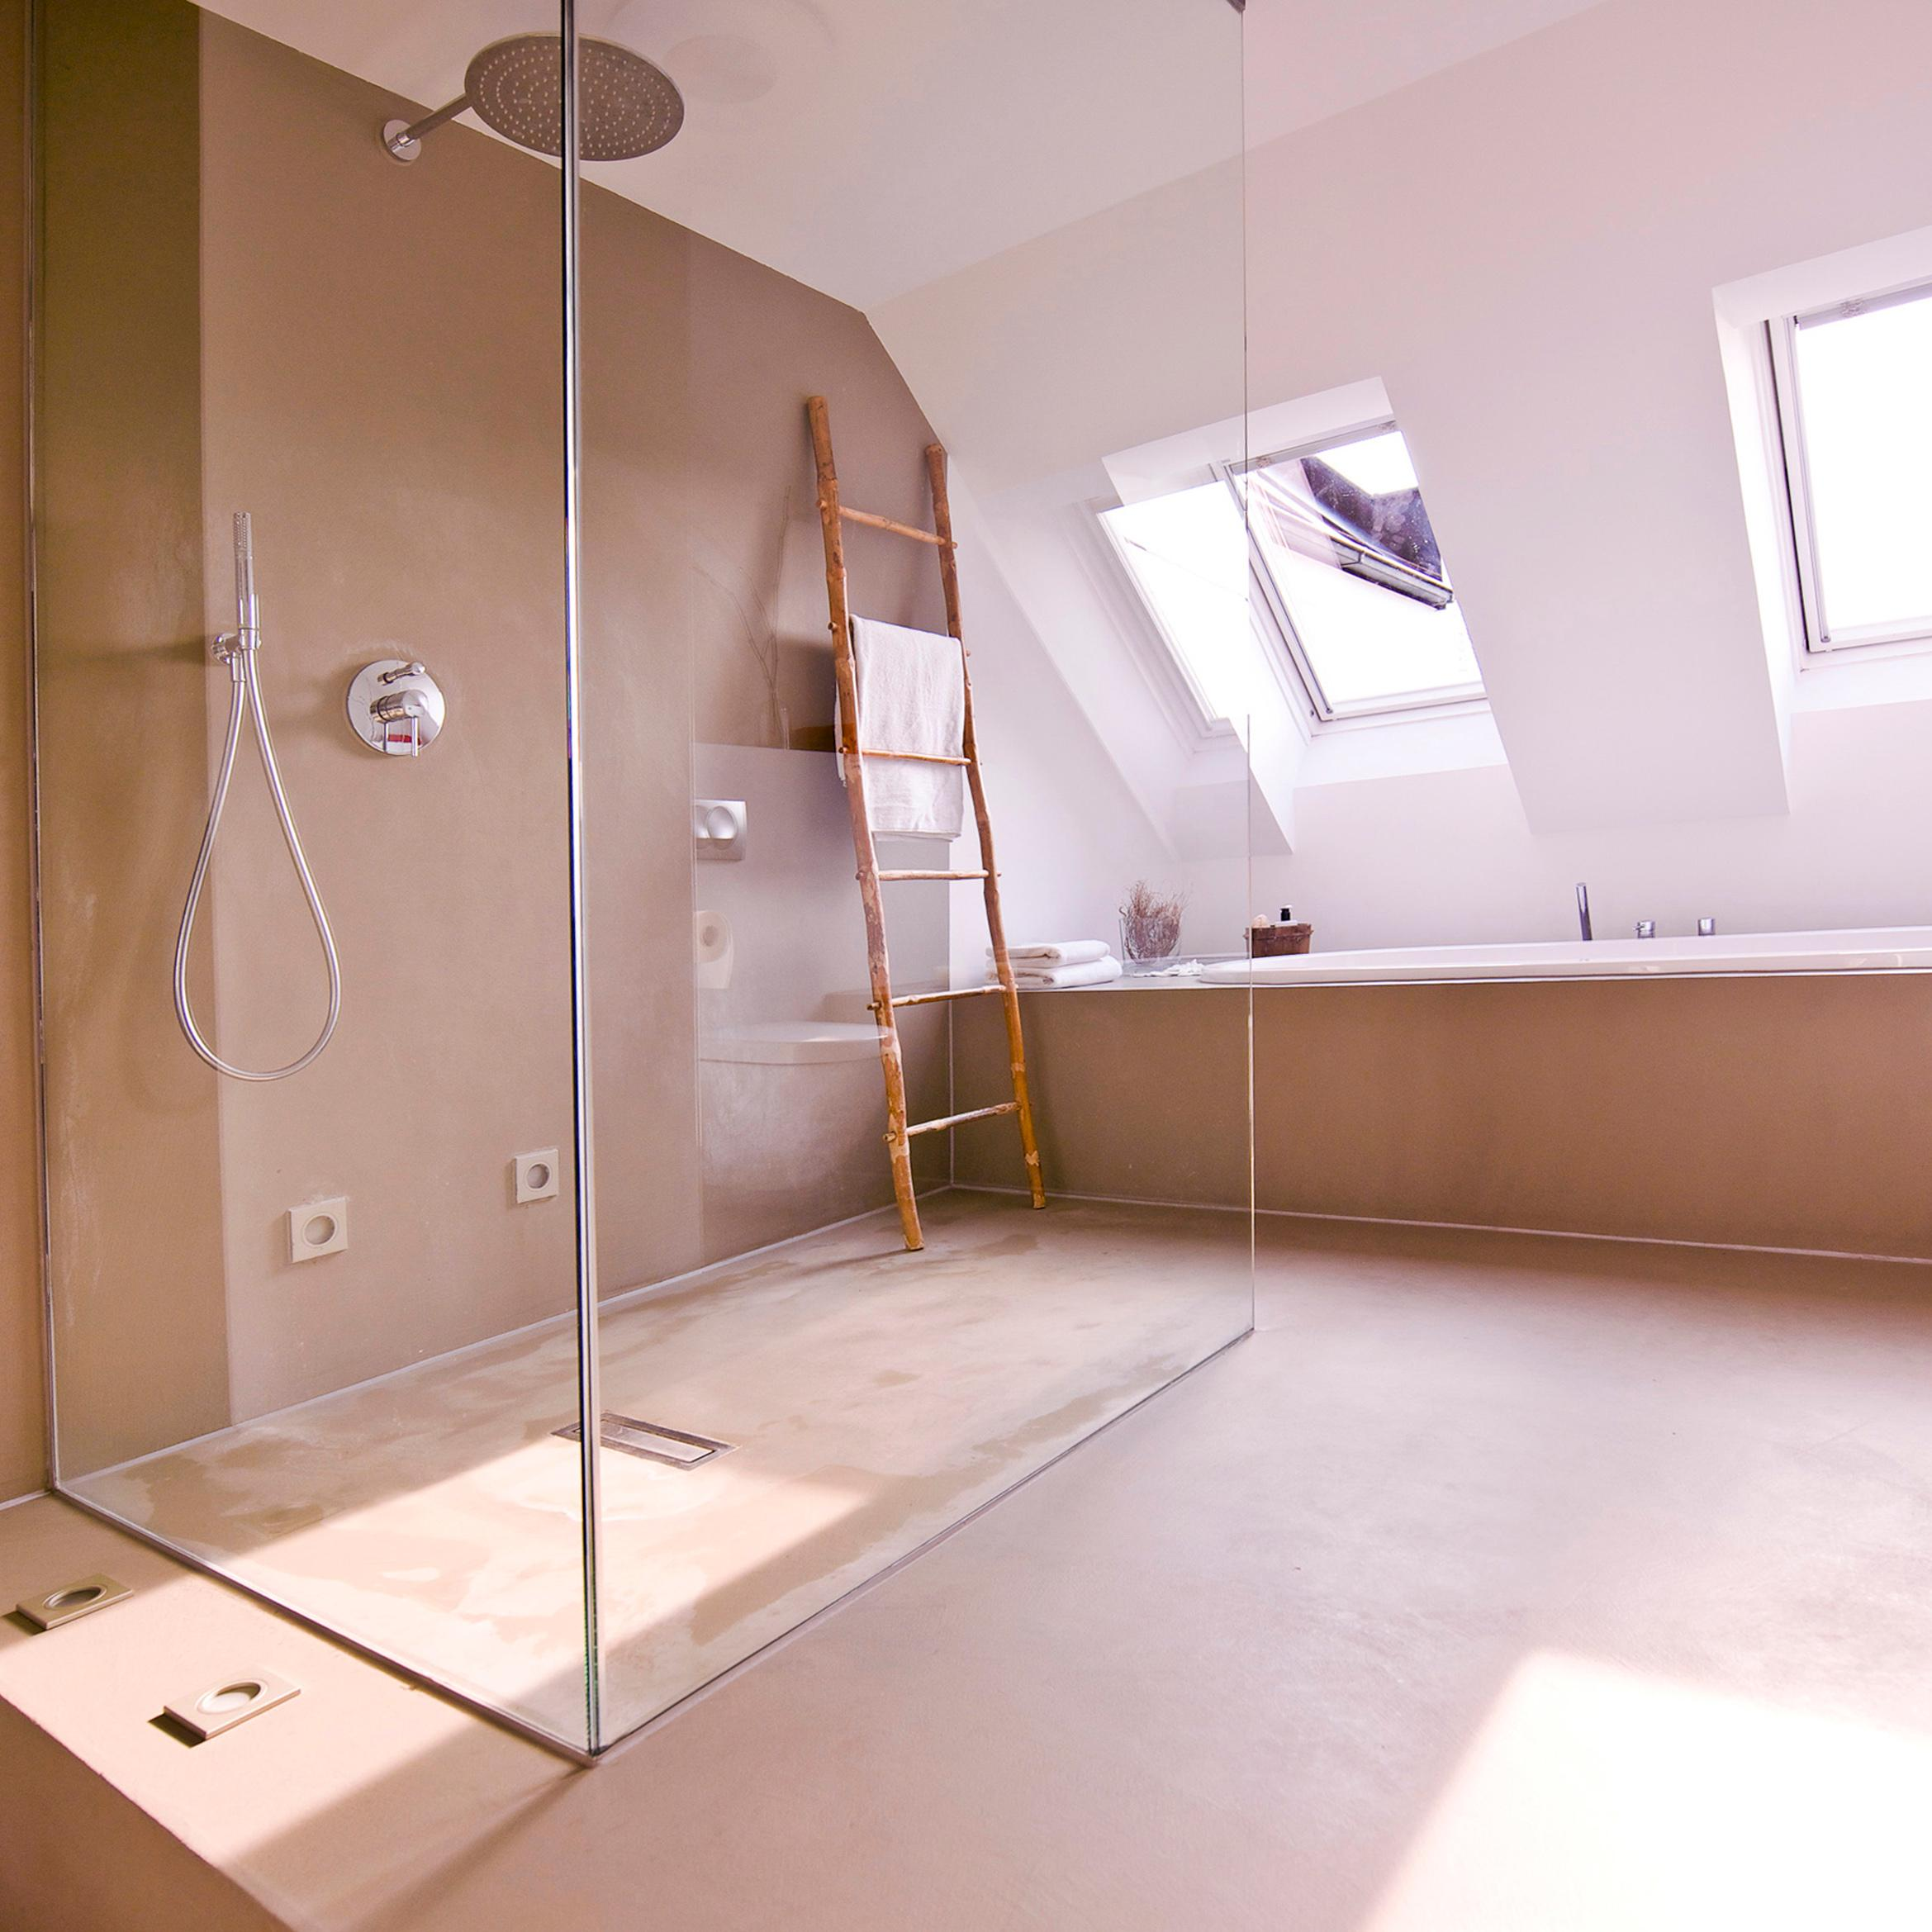 Sichtestrich Im Badezimmer Betonboden Bad Latest Bodenbelag Frs Bad Zu Fliesen With